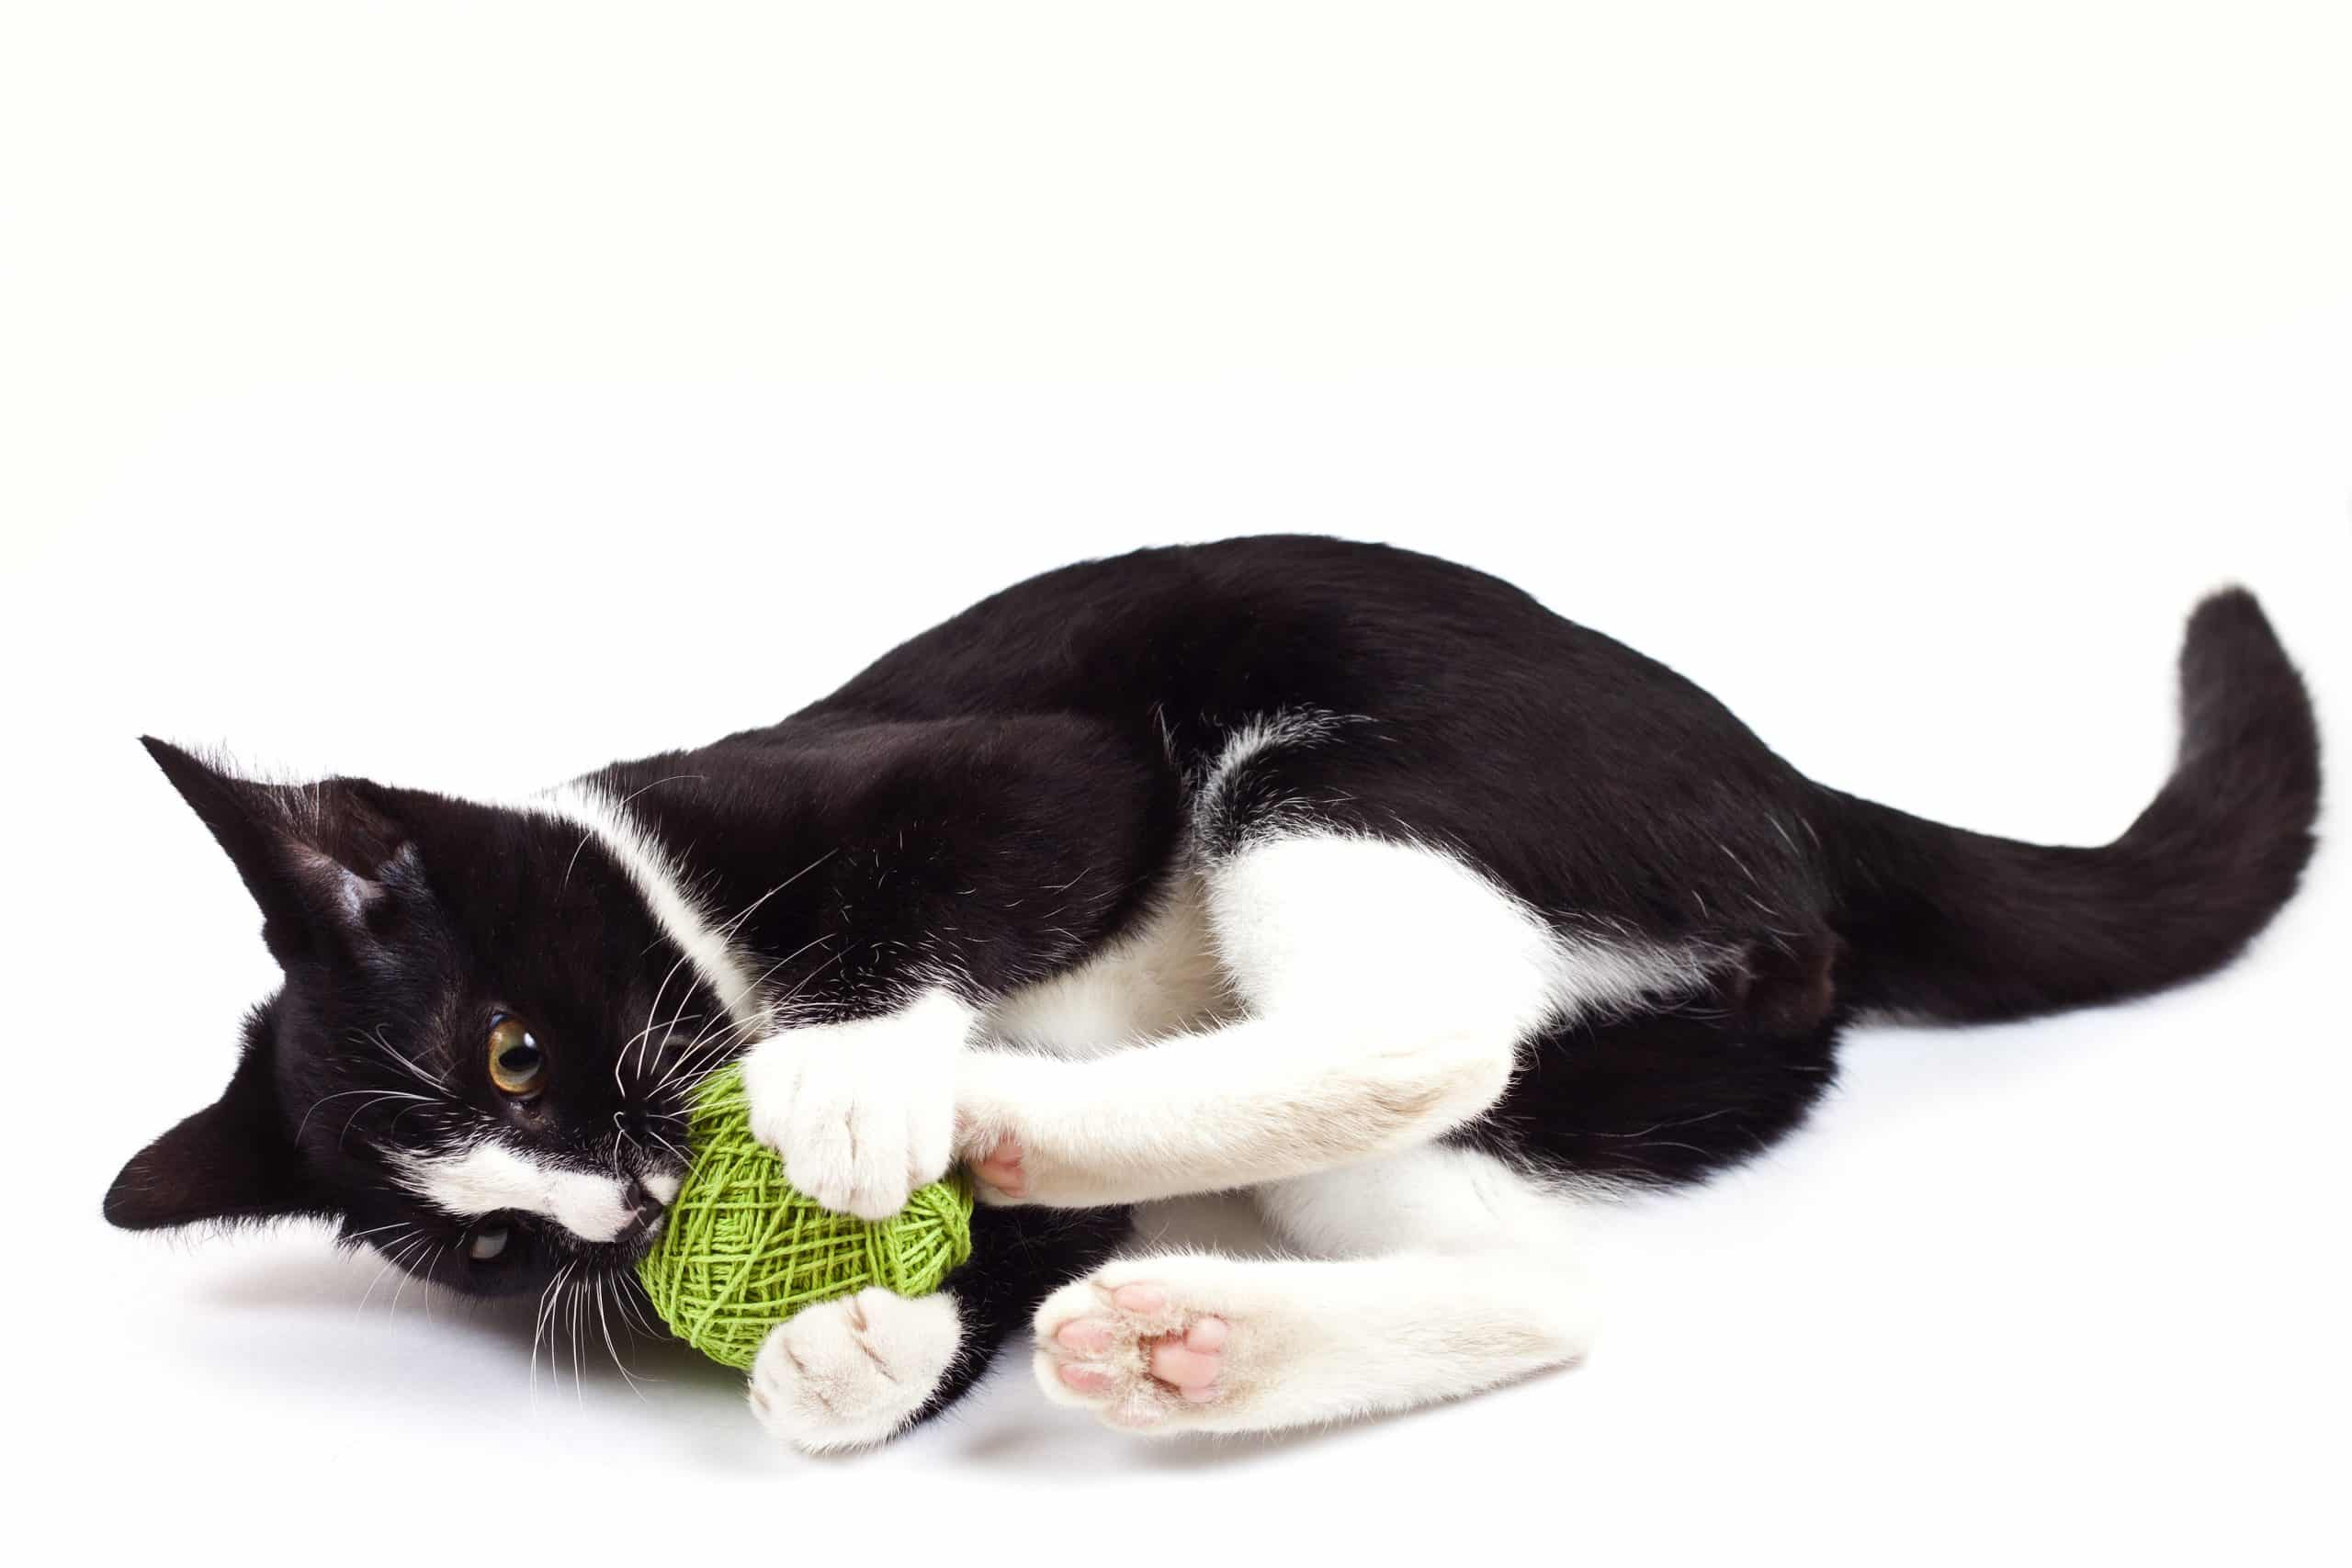 cat playing with a ball on a white background